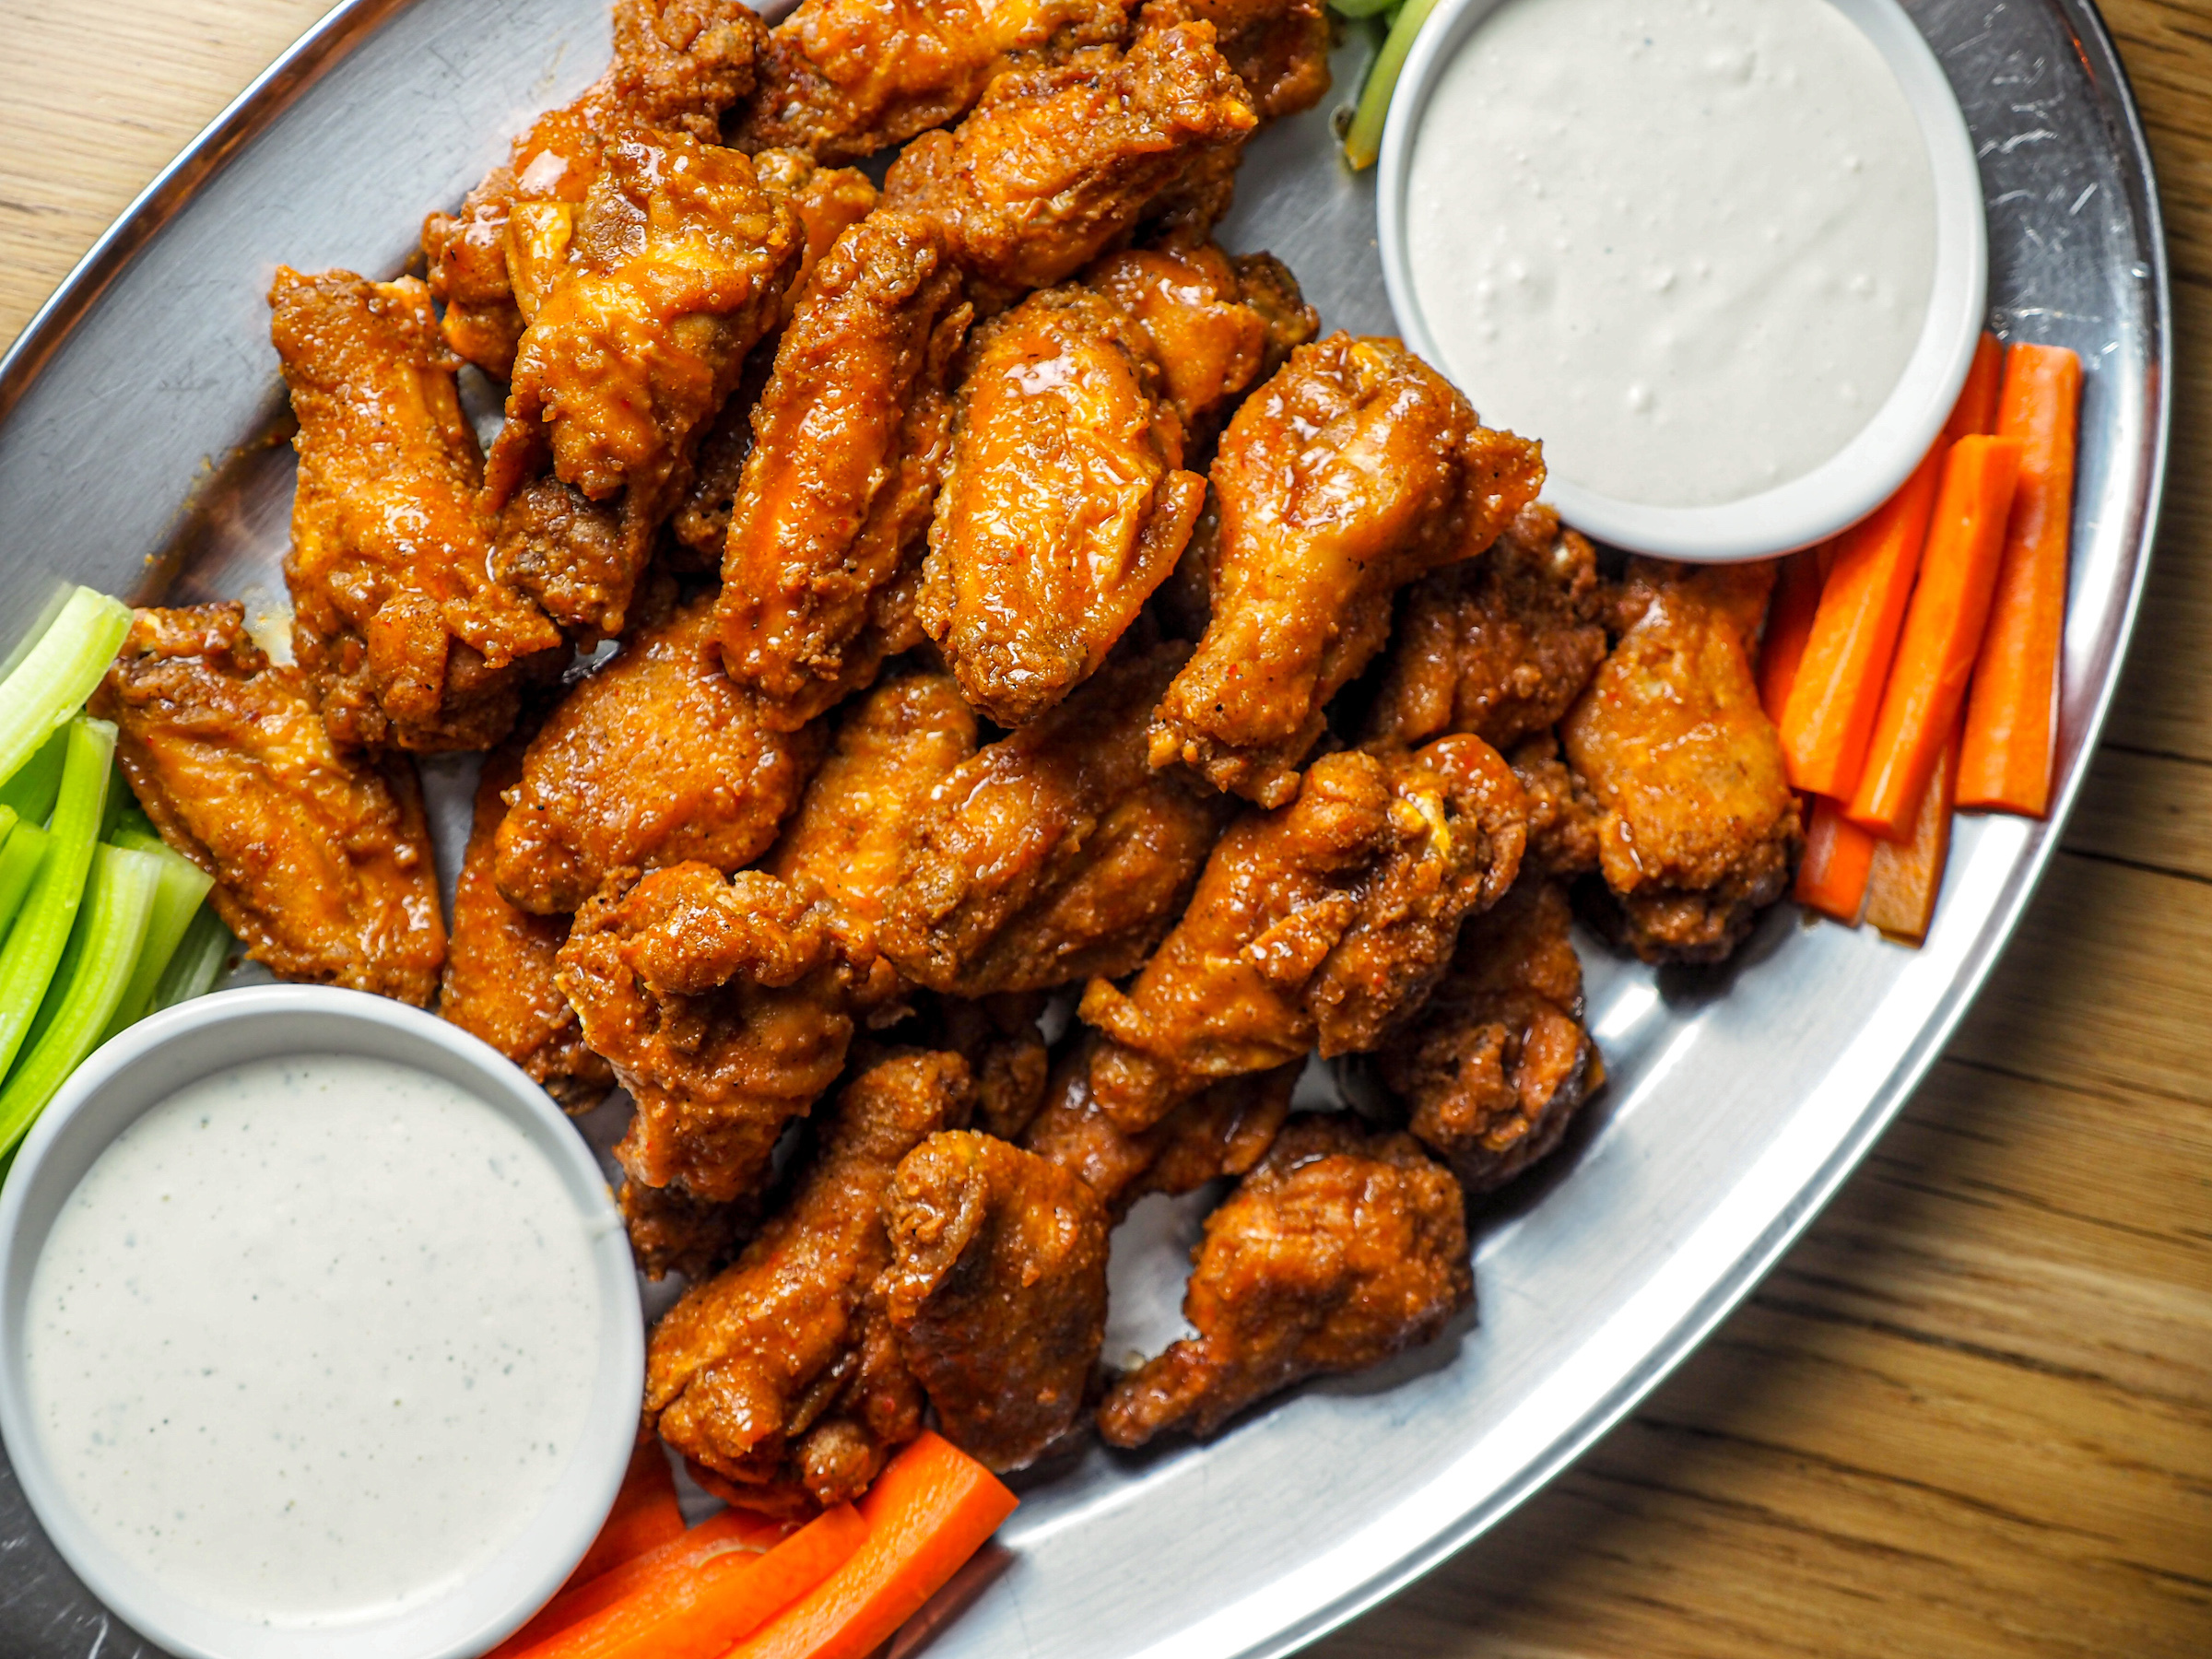 The Fifty/50 wings